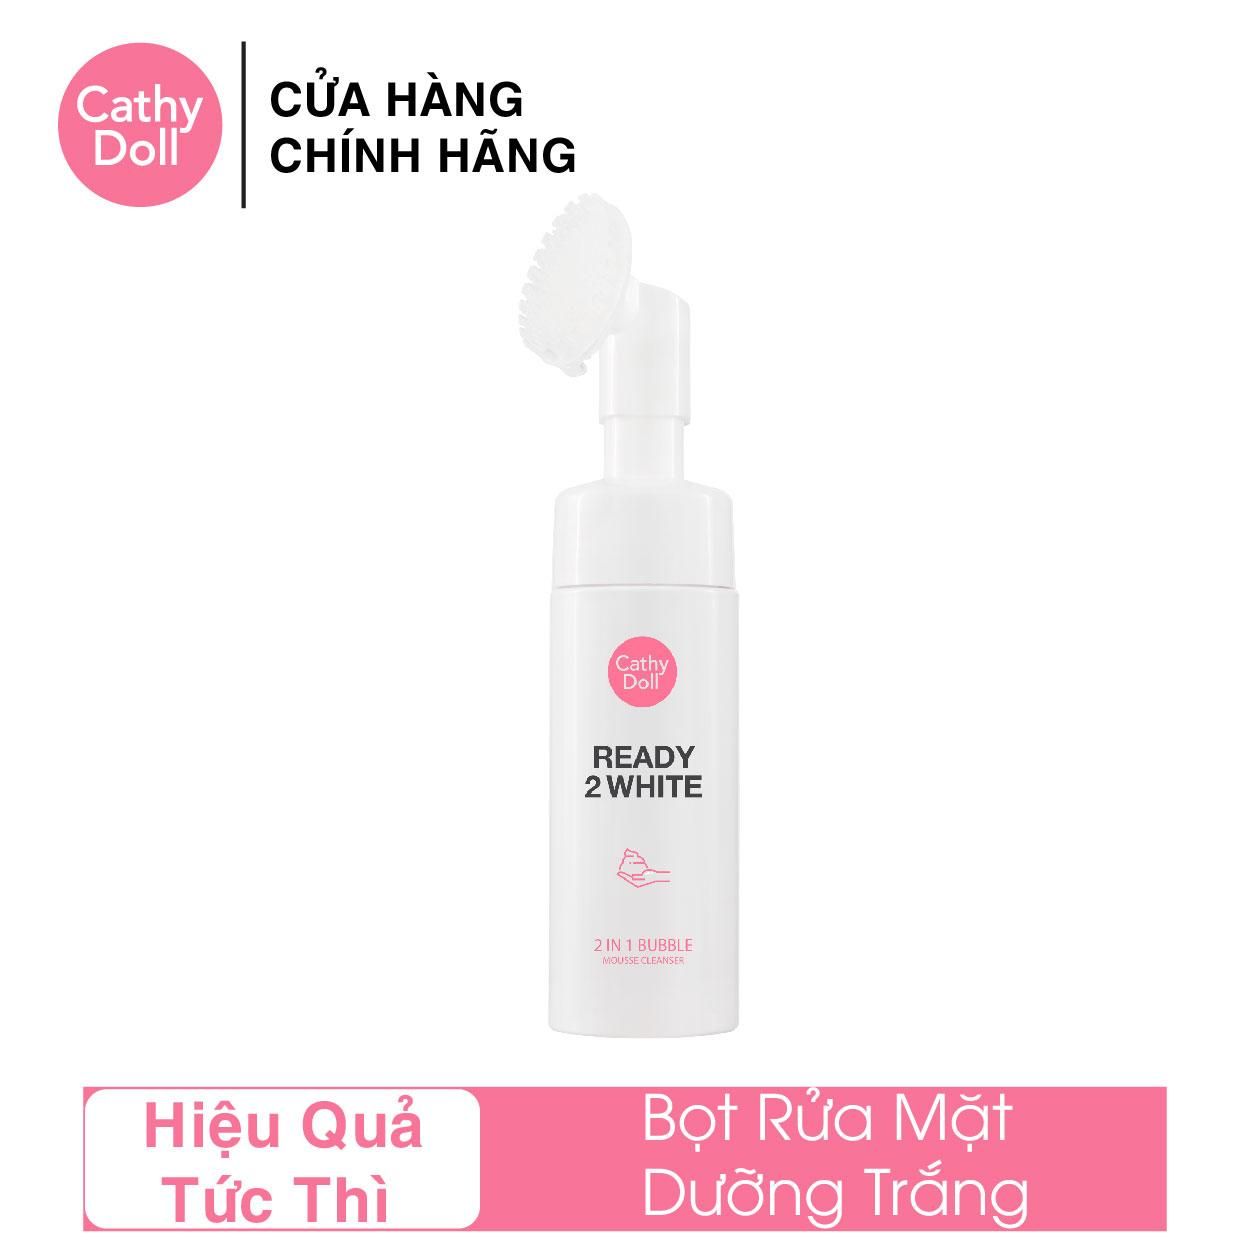 Sữa Rửa Mặt Trắng Da Cathy Doll Ready 2 White 2in1 Bubble Mousse Cleanser 120ml tốt nhất